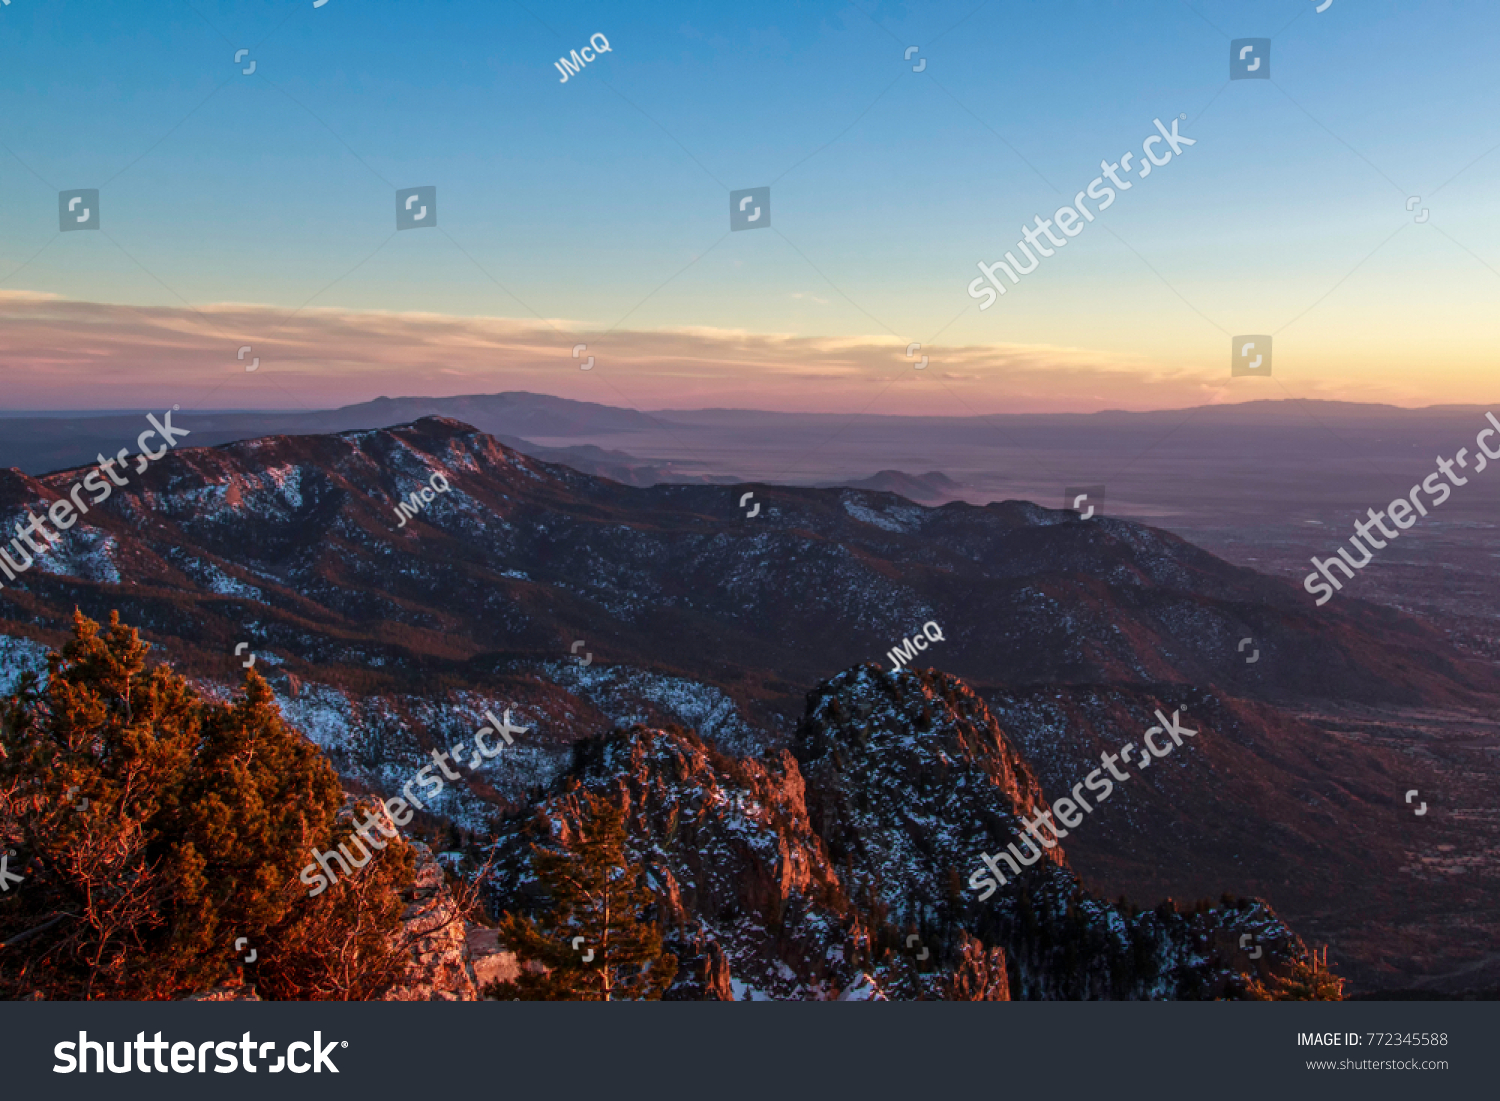 Sunset on sandia mountains albuquerque new stock photo 772345588 sunset on the sandia mountains at albuquerque new mexico sciox Choice Image